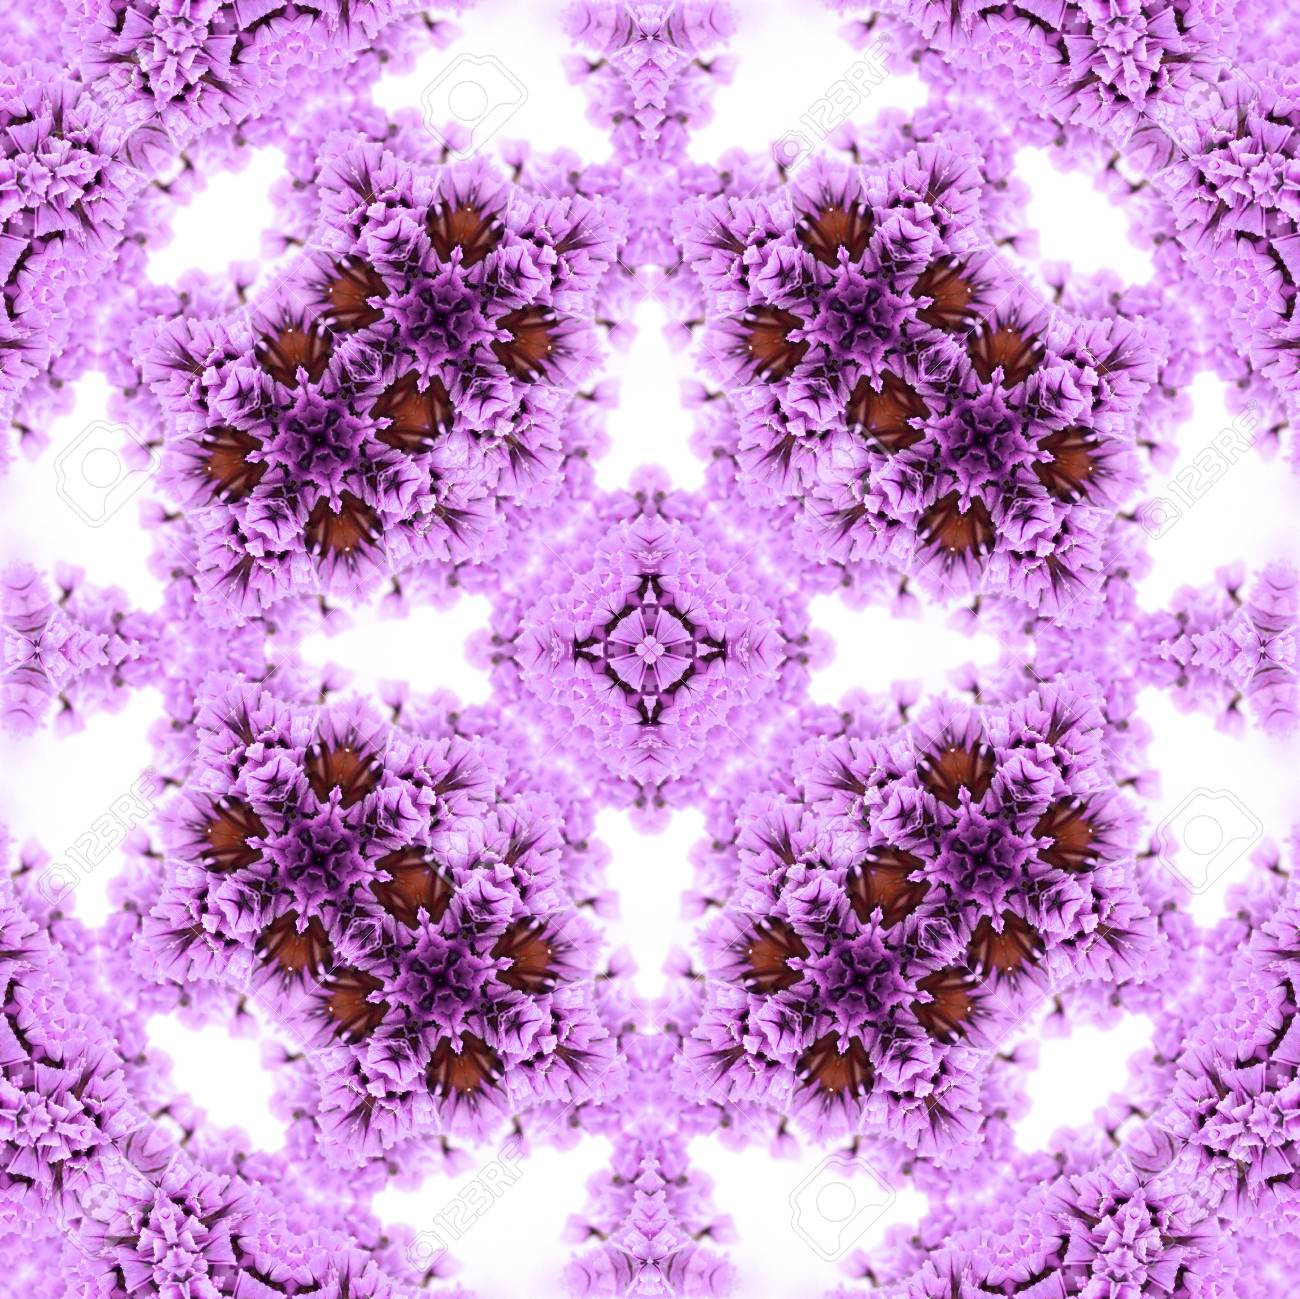 Abstract flowers seamless pattern background. Kaleidoscope from flowers. Hydraulic tile design. - 104075041